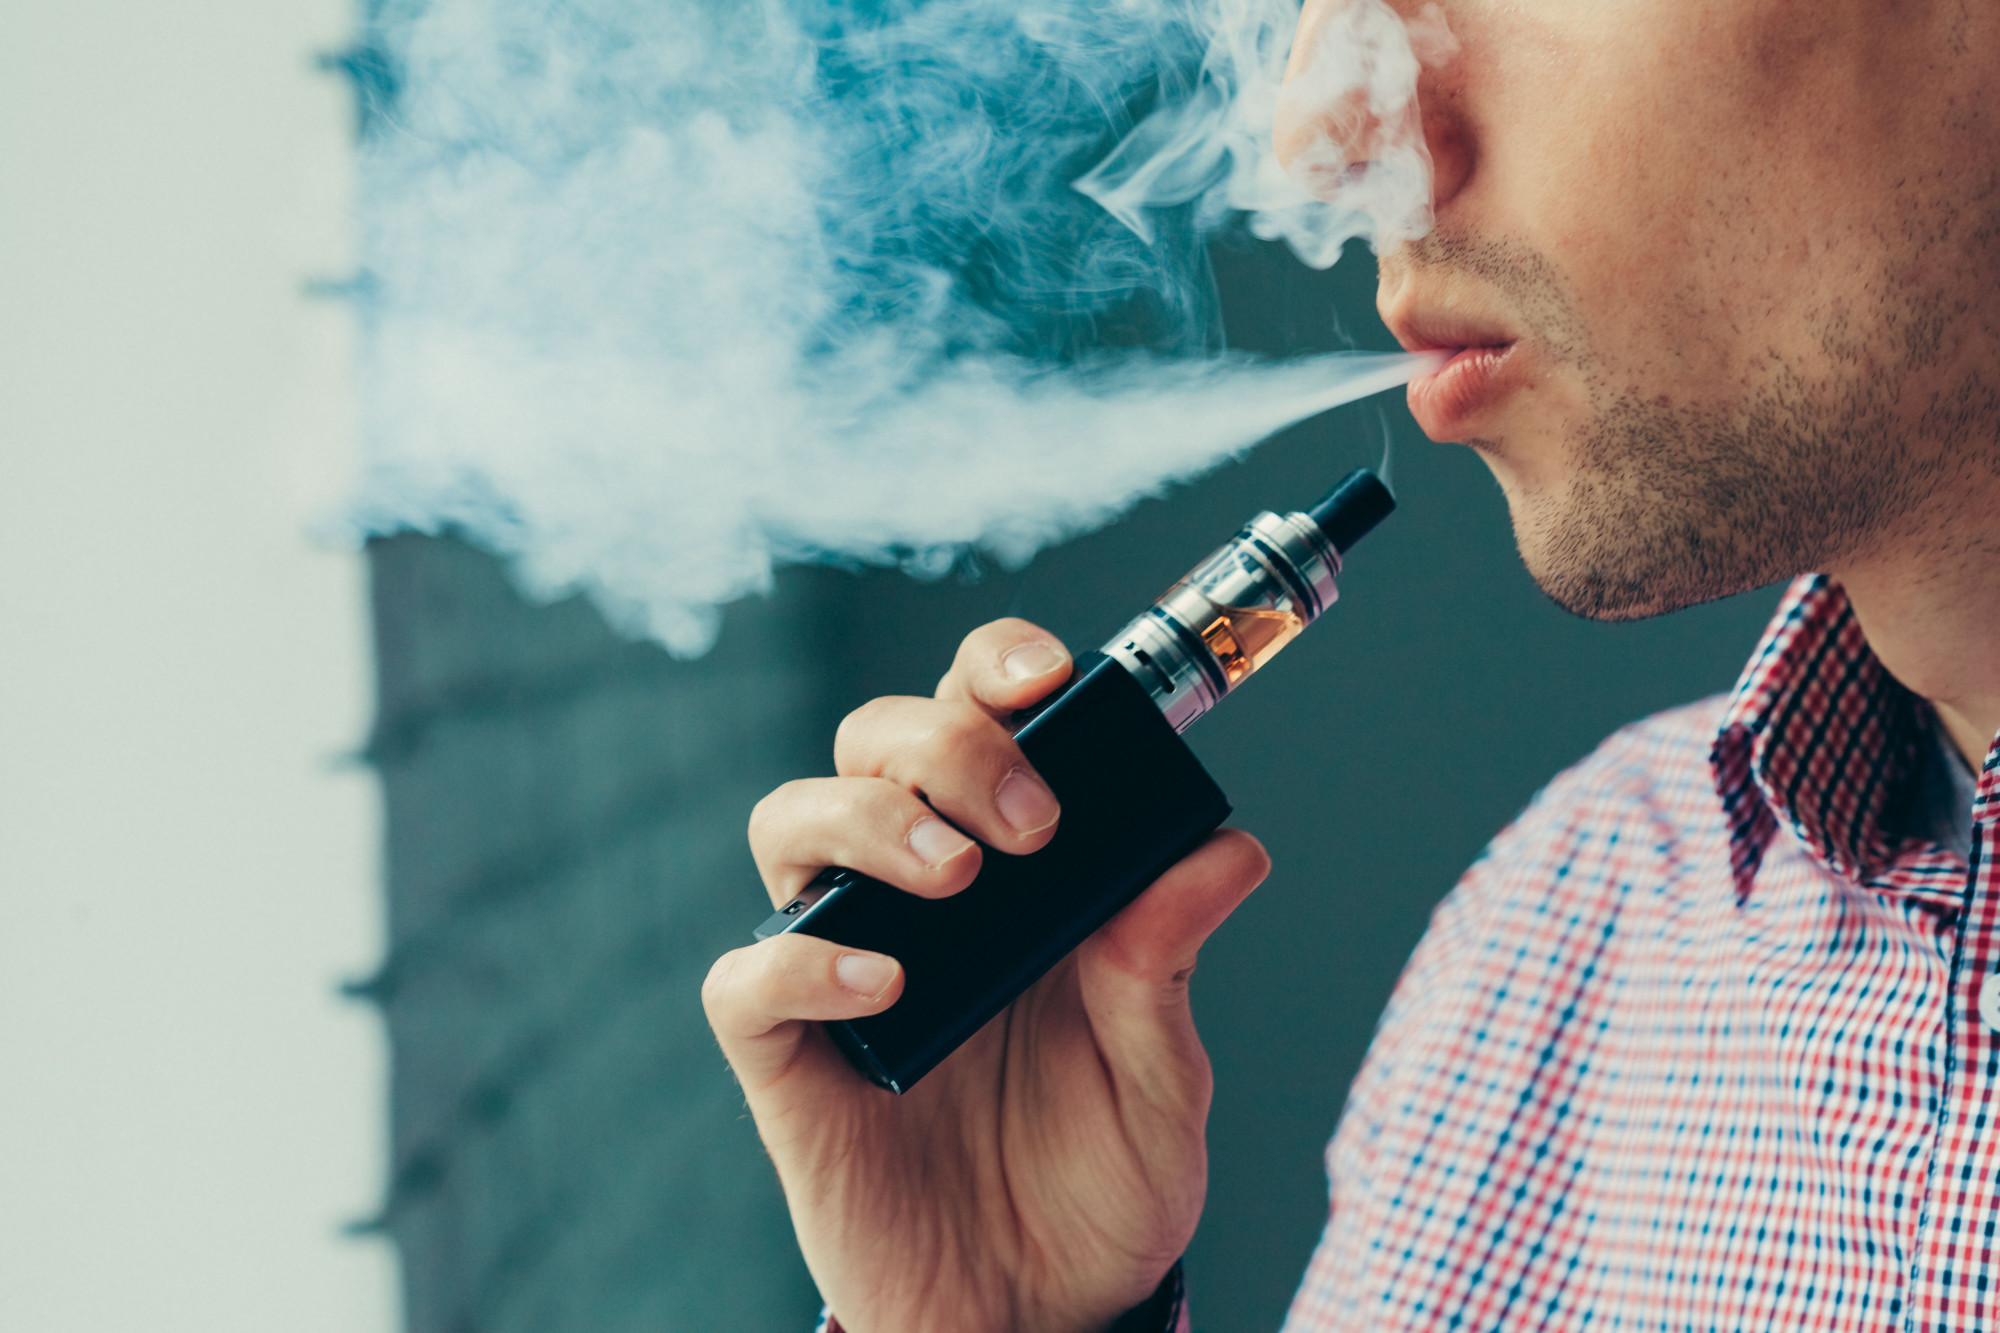 Vaping 101: 5 Top Tips for Vaping Beginners